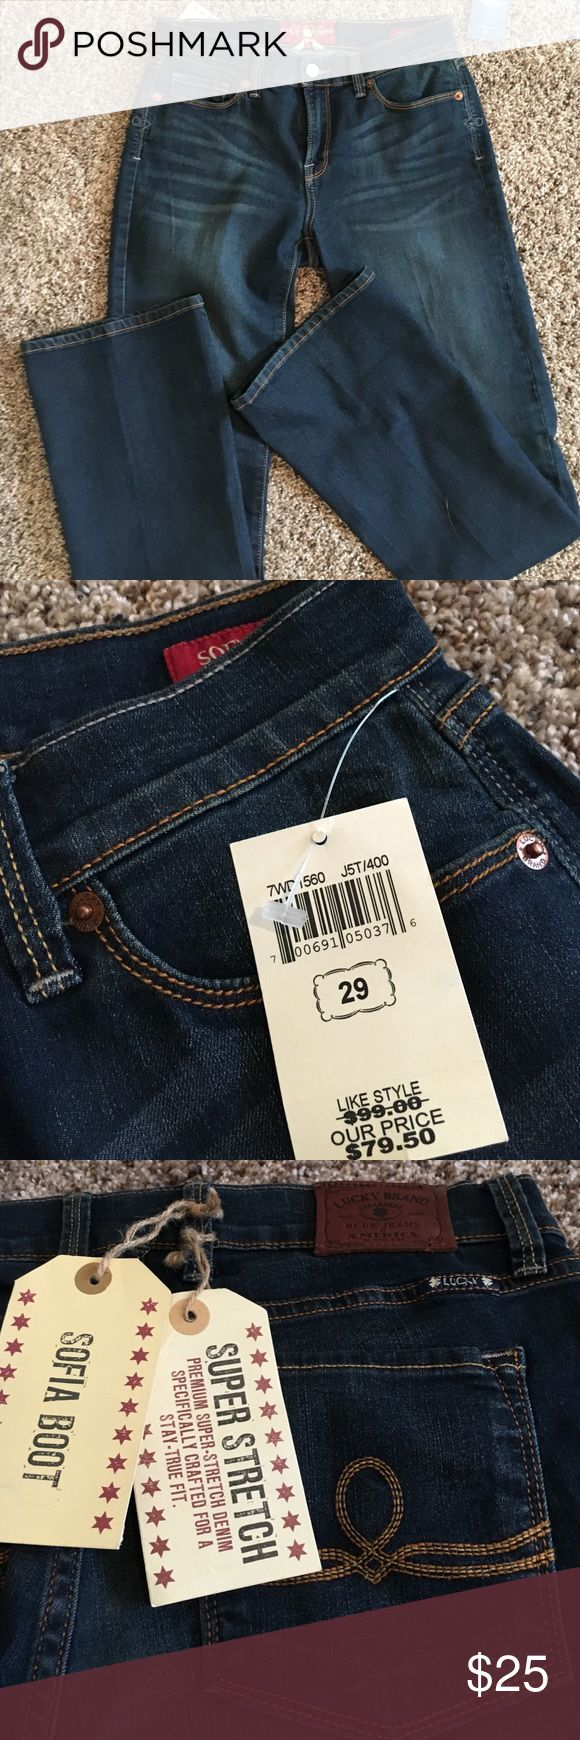 Lucky Jeans Outlet purchase brand new dark wash lucky jeans Lucky Brand Jeans Boot Cut